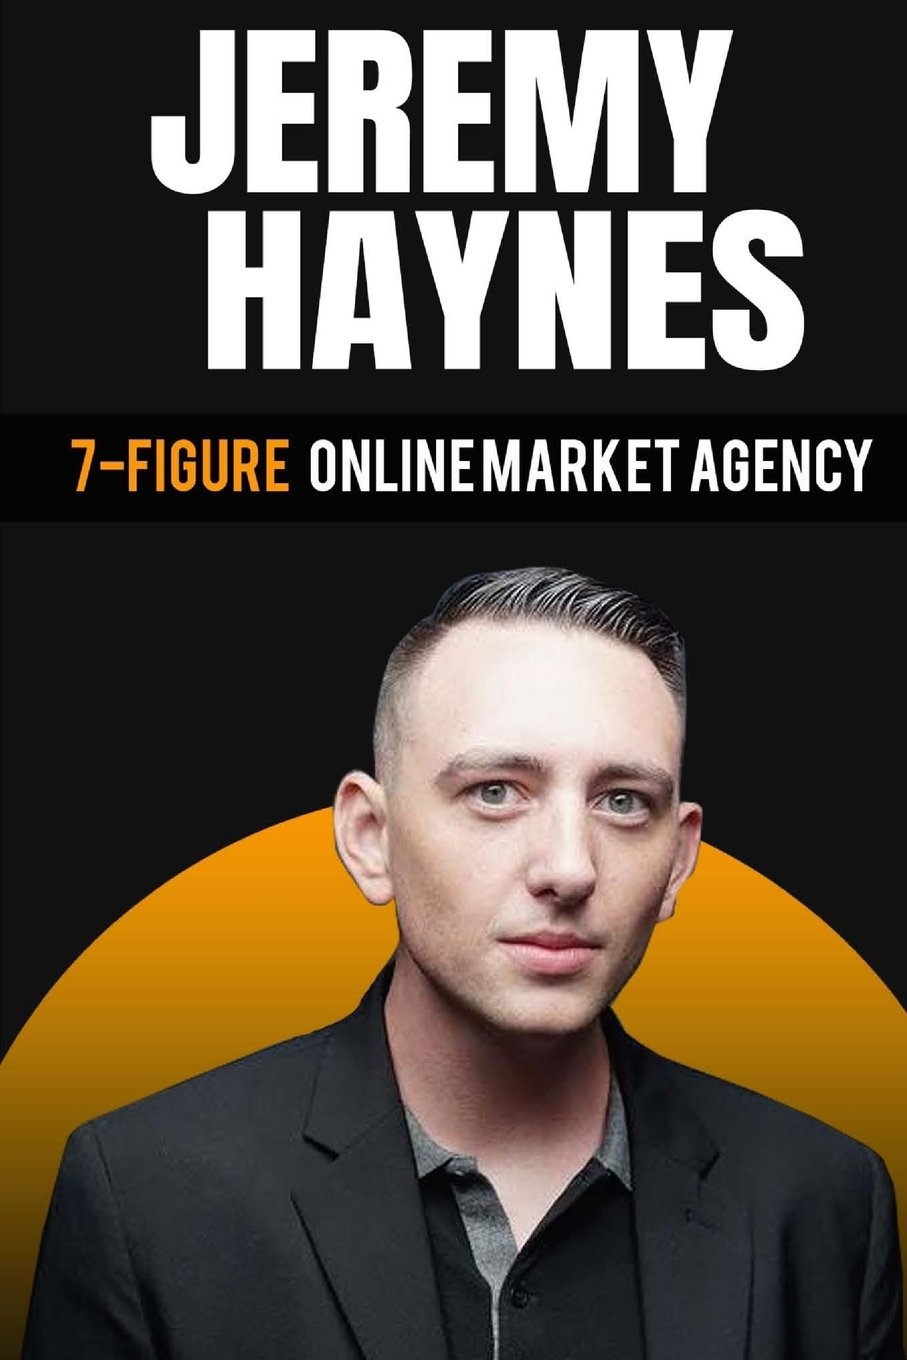 Read Online 7-Figure Online Marketing Agency At 23 Years Old Jeremy Haynes (Project EGG: Entrepreneurs Gathering for Growth) (Volume 2) ebook